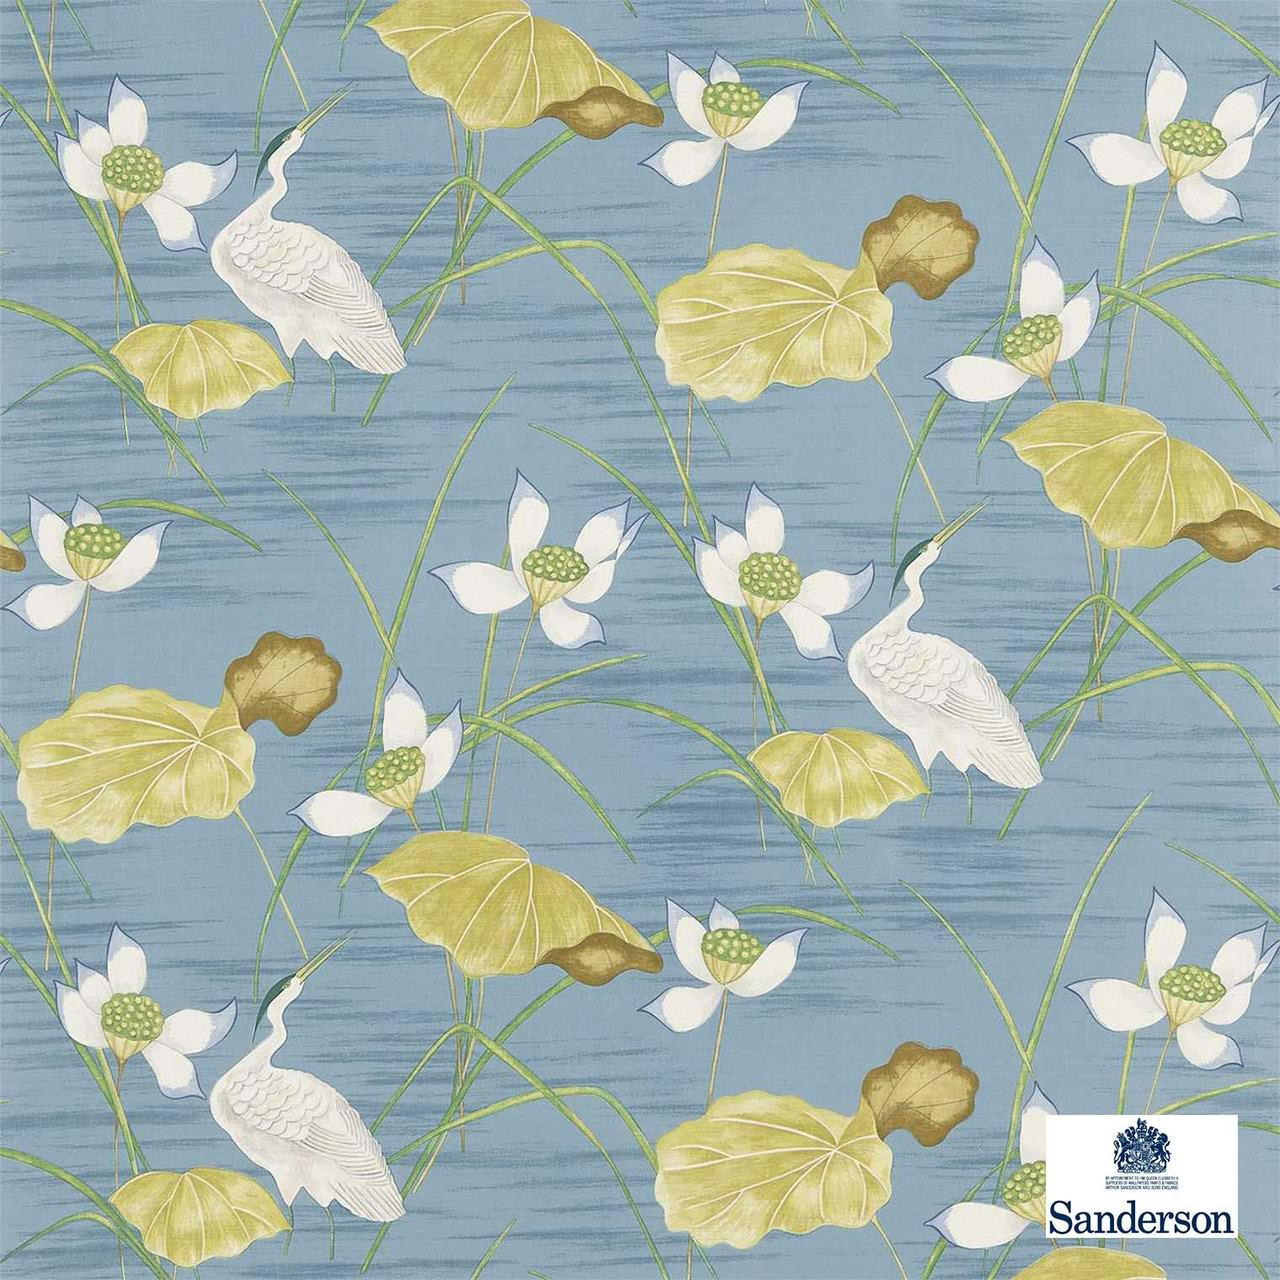 Sanderson HERONSFORD 223498  | Upholstery Fabric - Blue, Floral, Garden, Botantical, Asian, Animals, Fauna, Birds, Chinoiserie, Chinoise, Natural